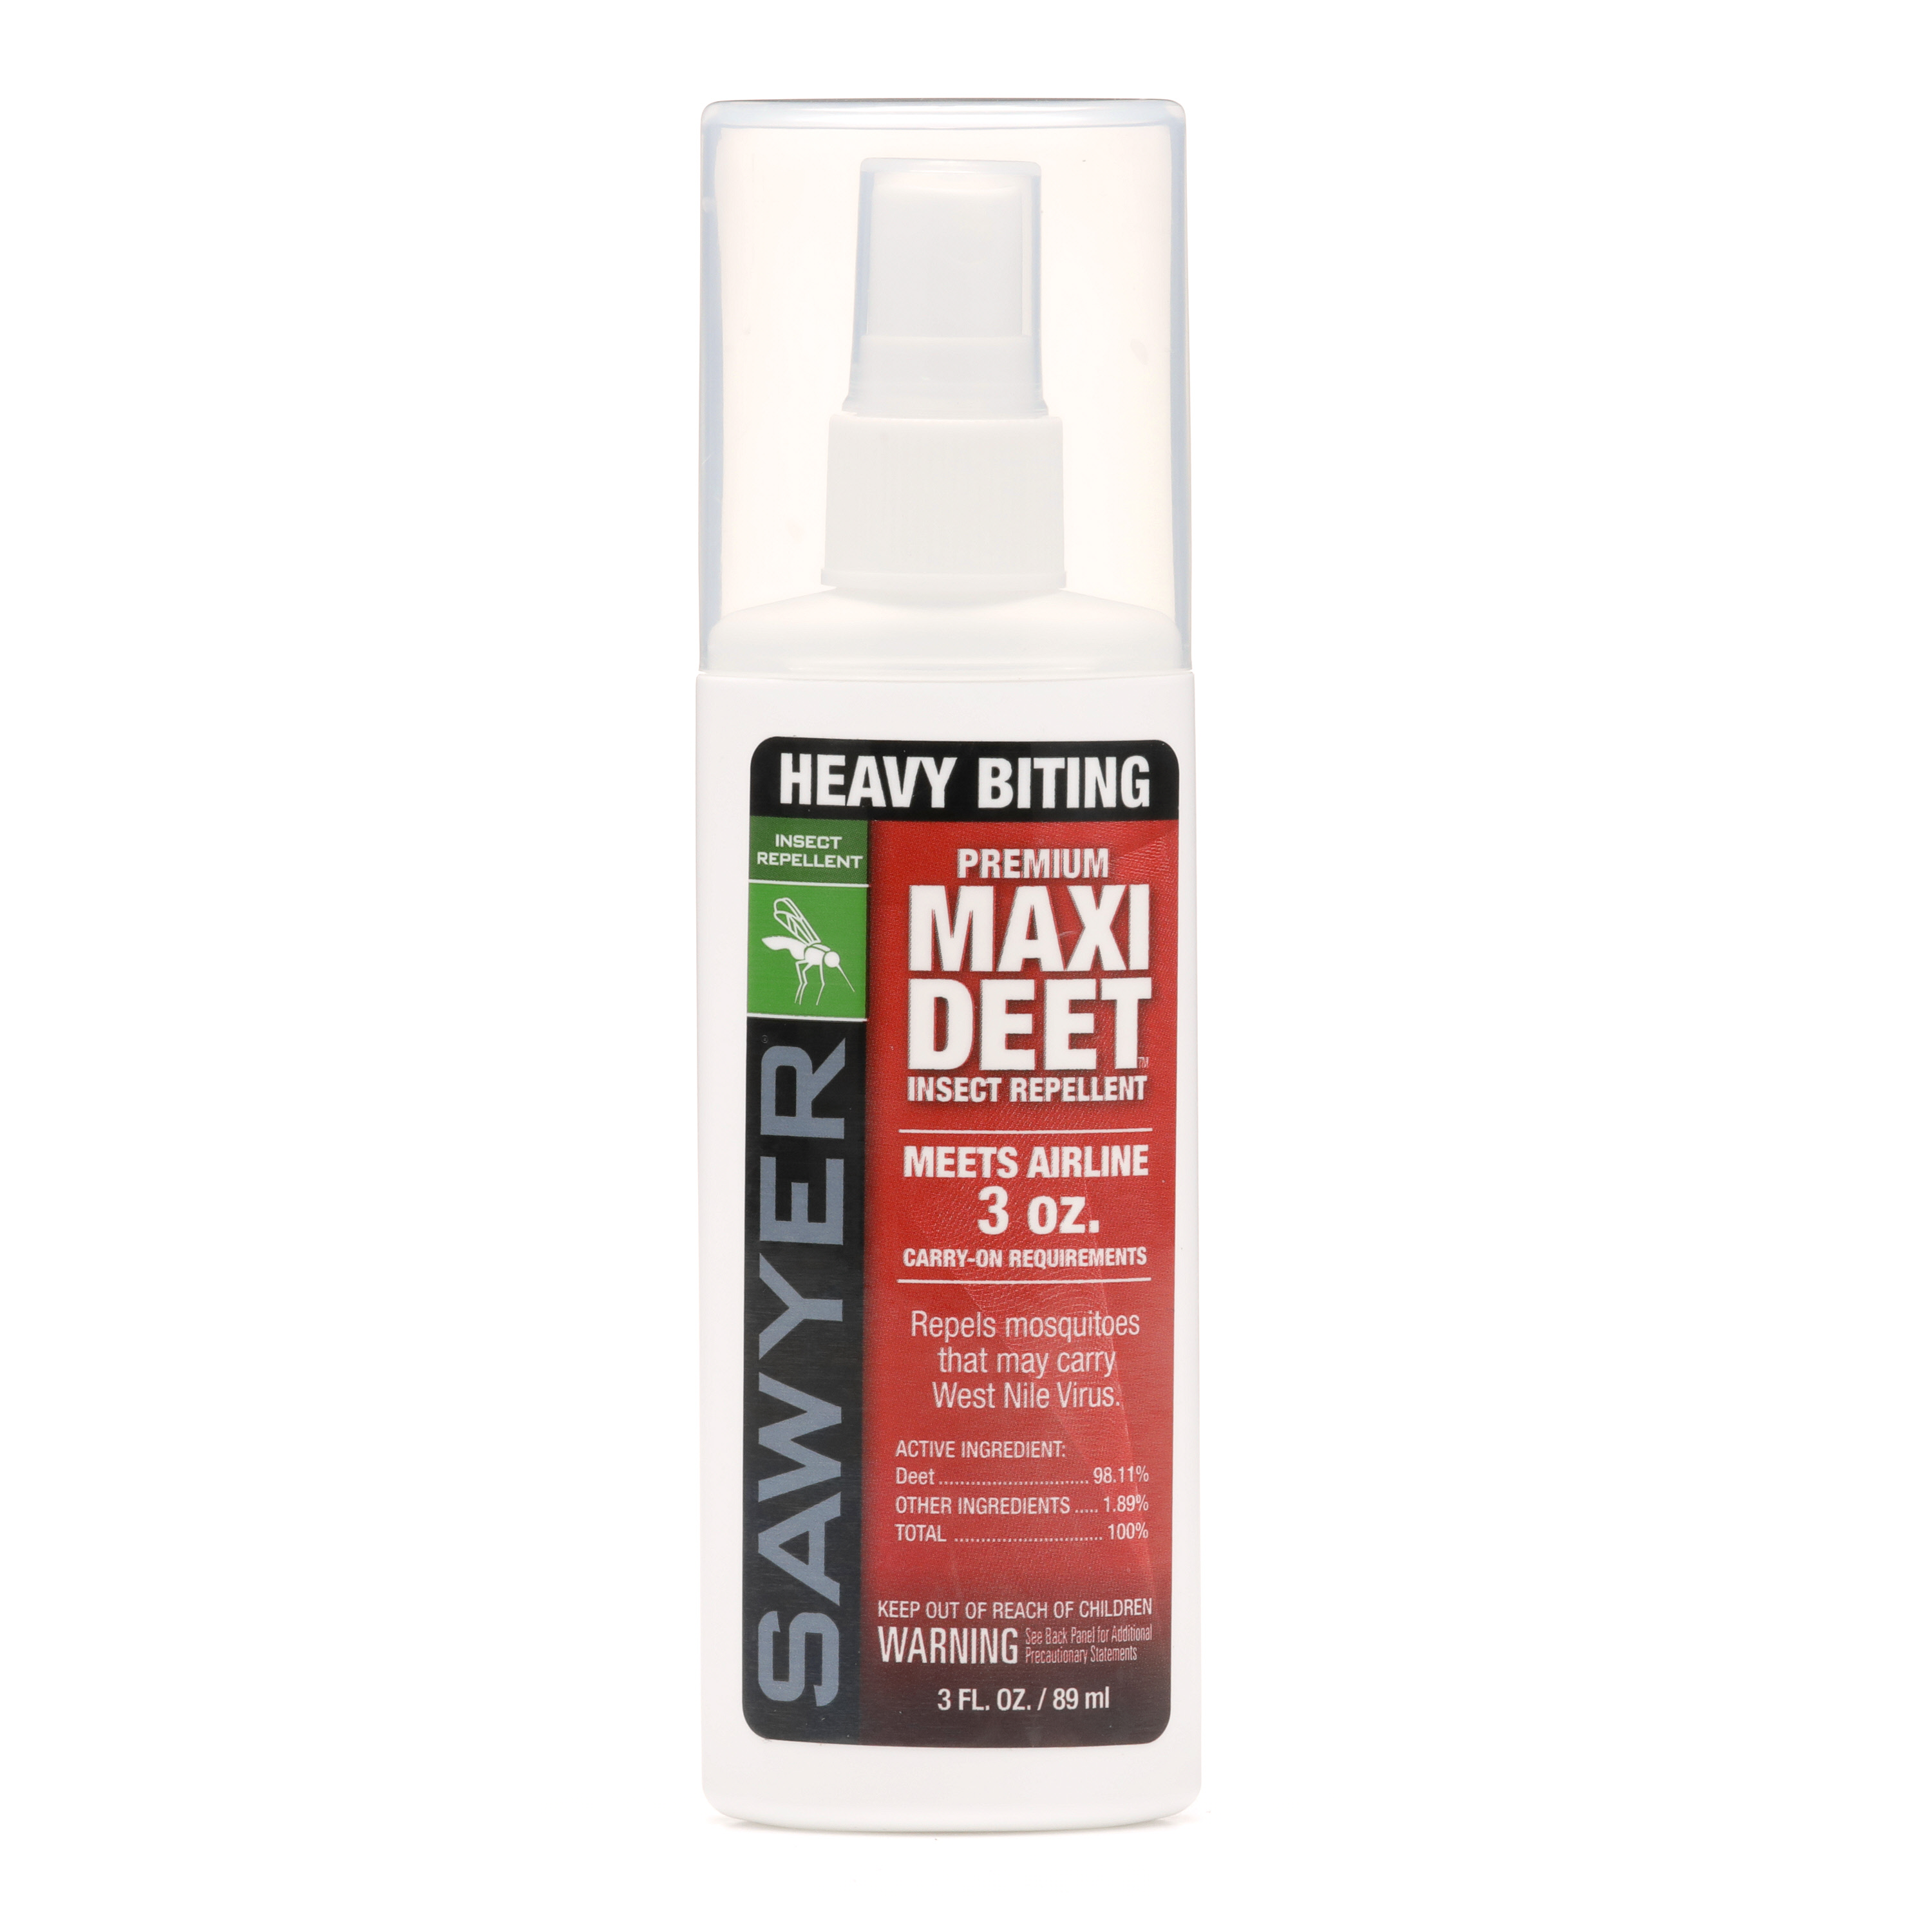 Sawyer MAXI DEET Insect Repellent Spray Spin 360